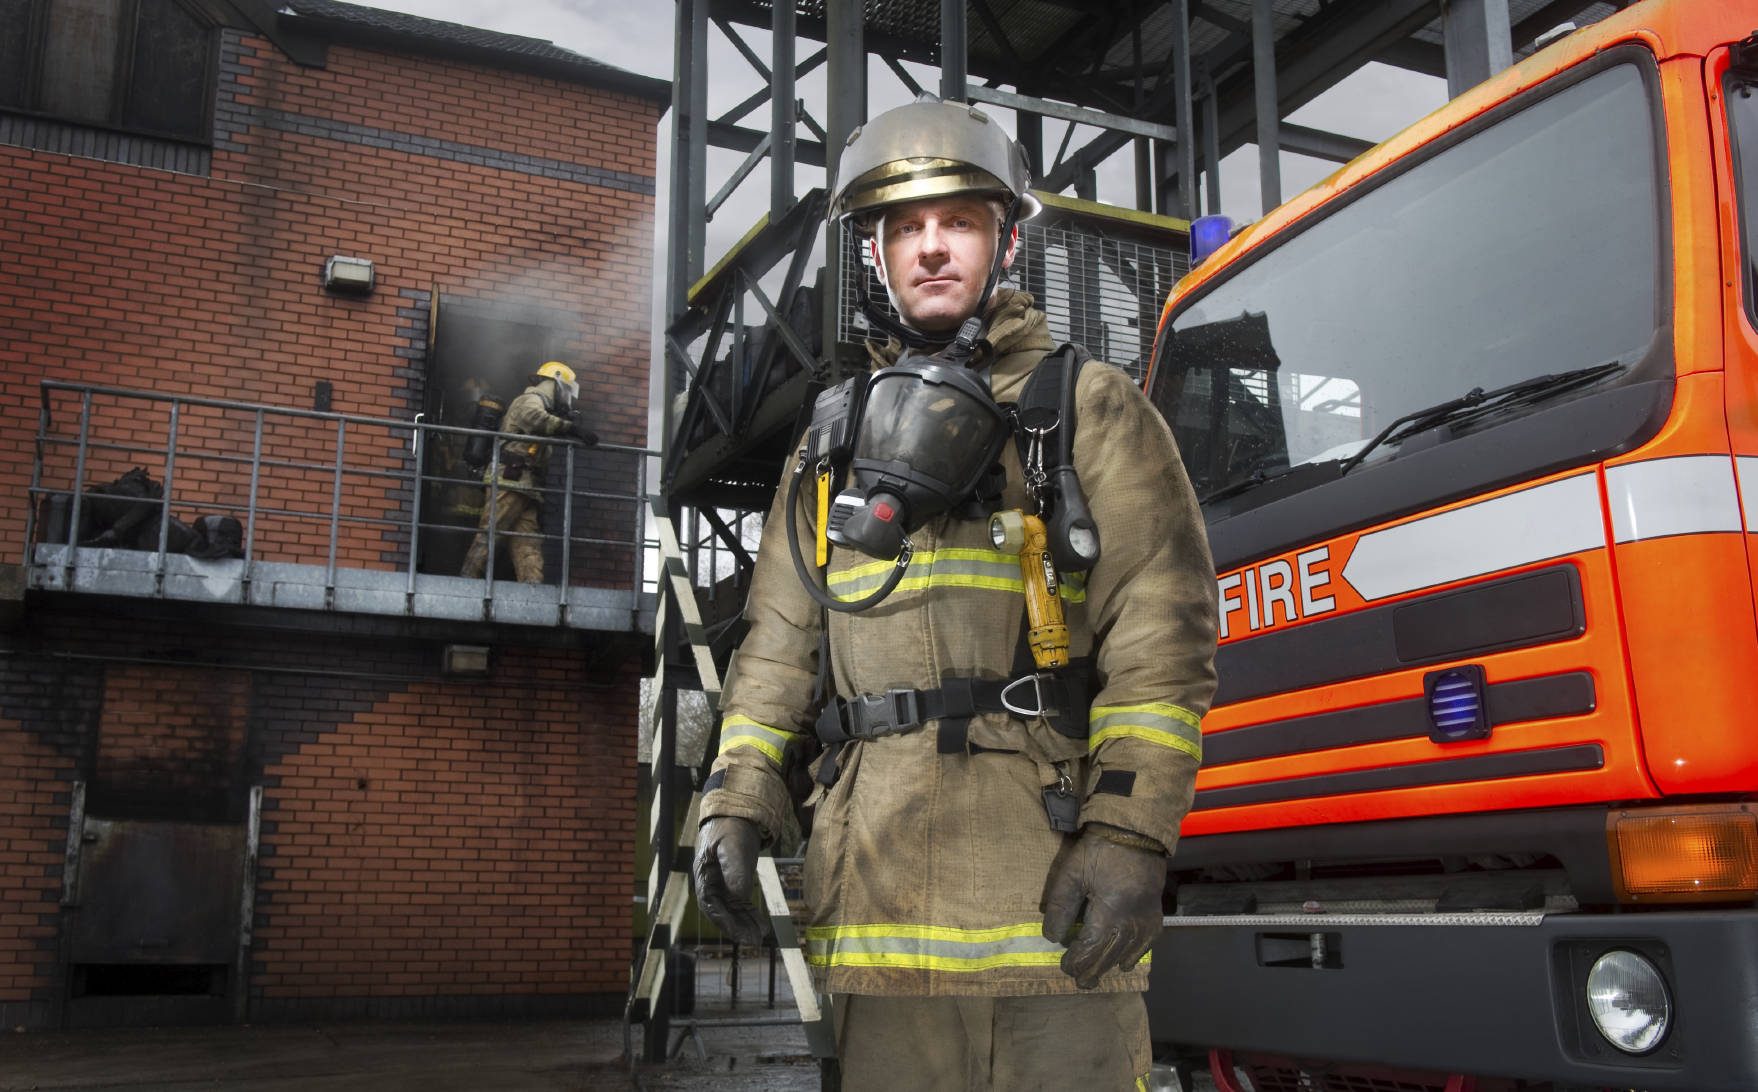 police fire service merger, the pros and cons